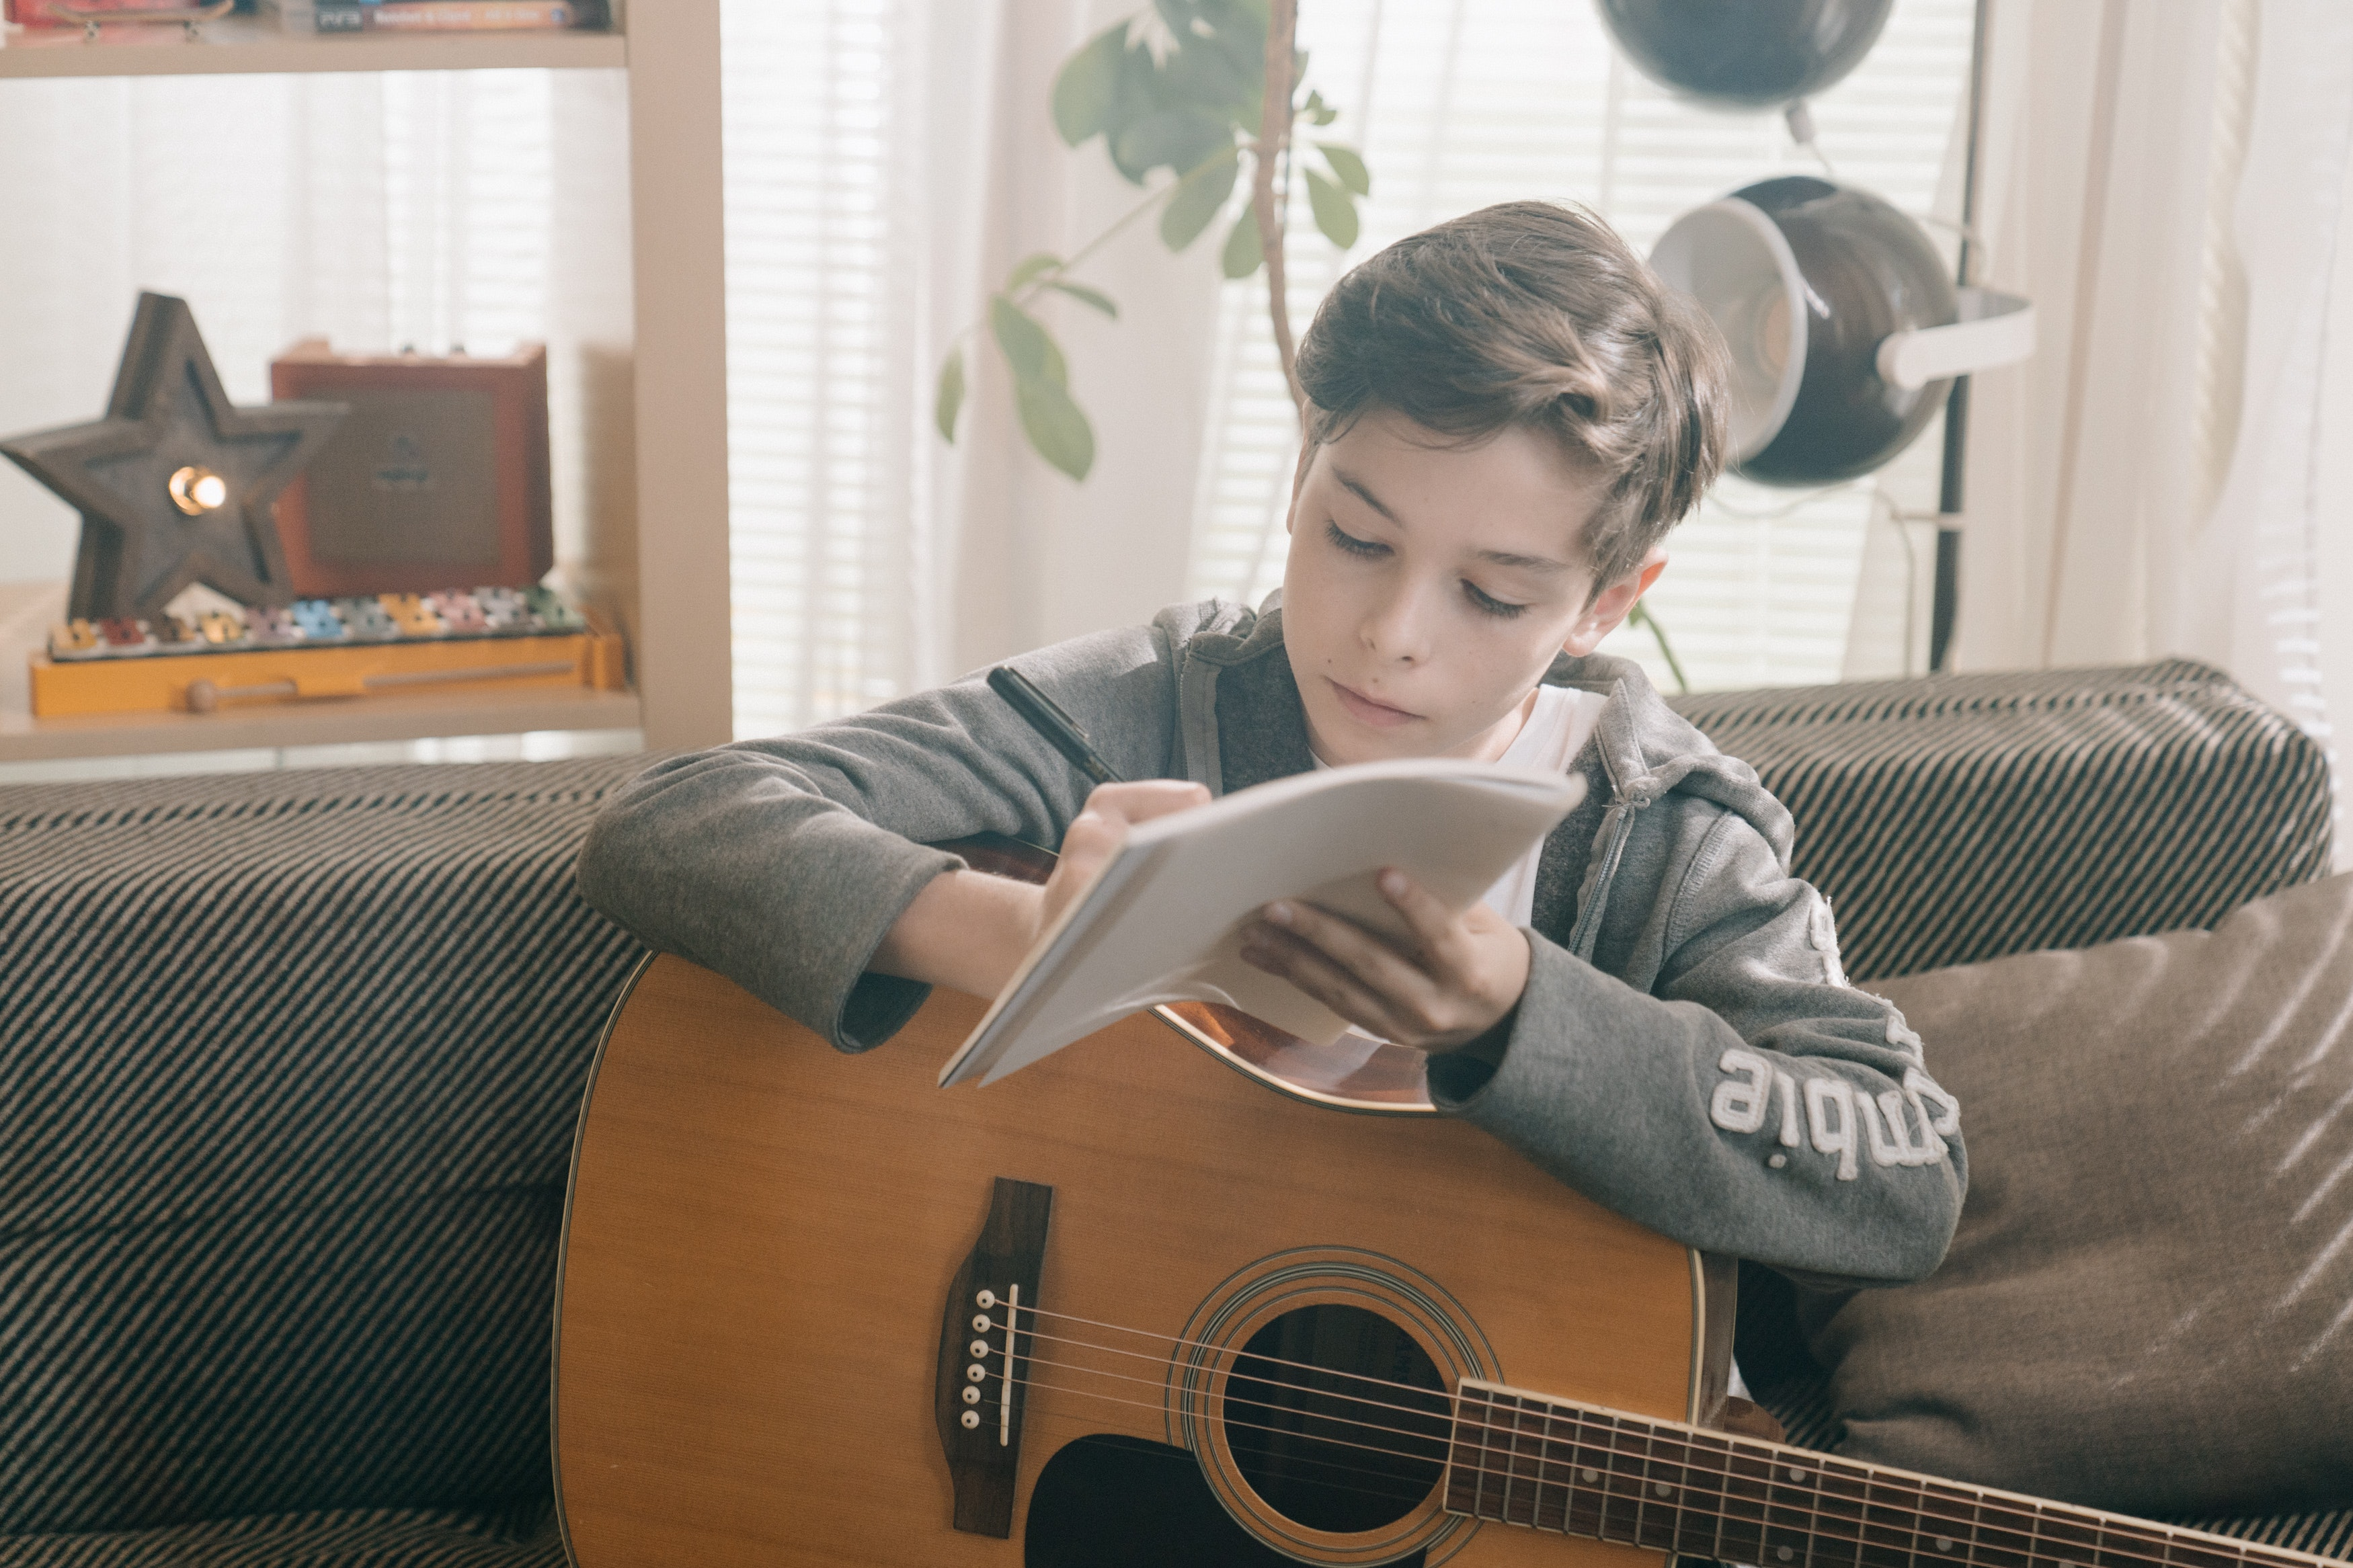 songwriting lessons near me for kids and adults in hendersonville nc